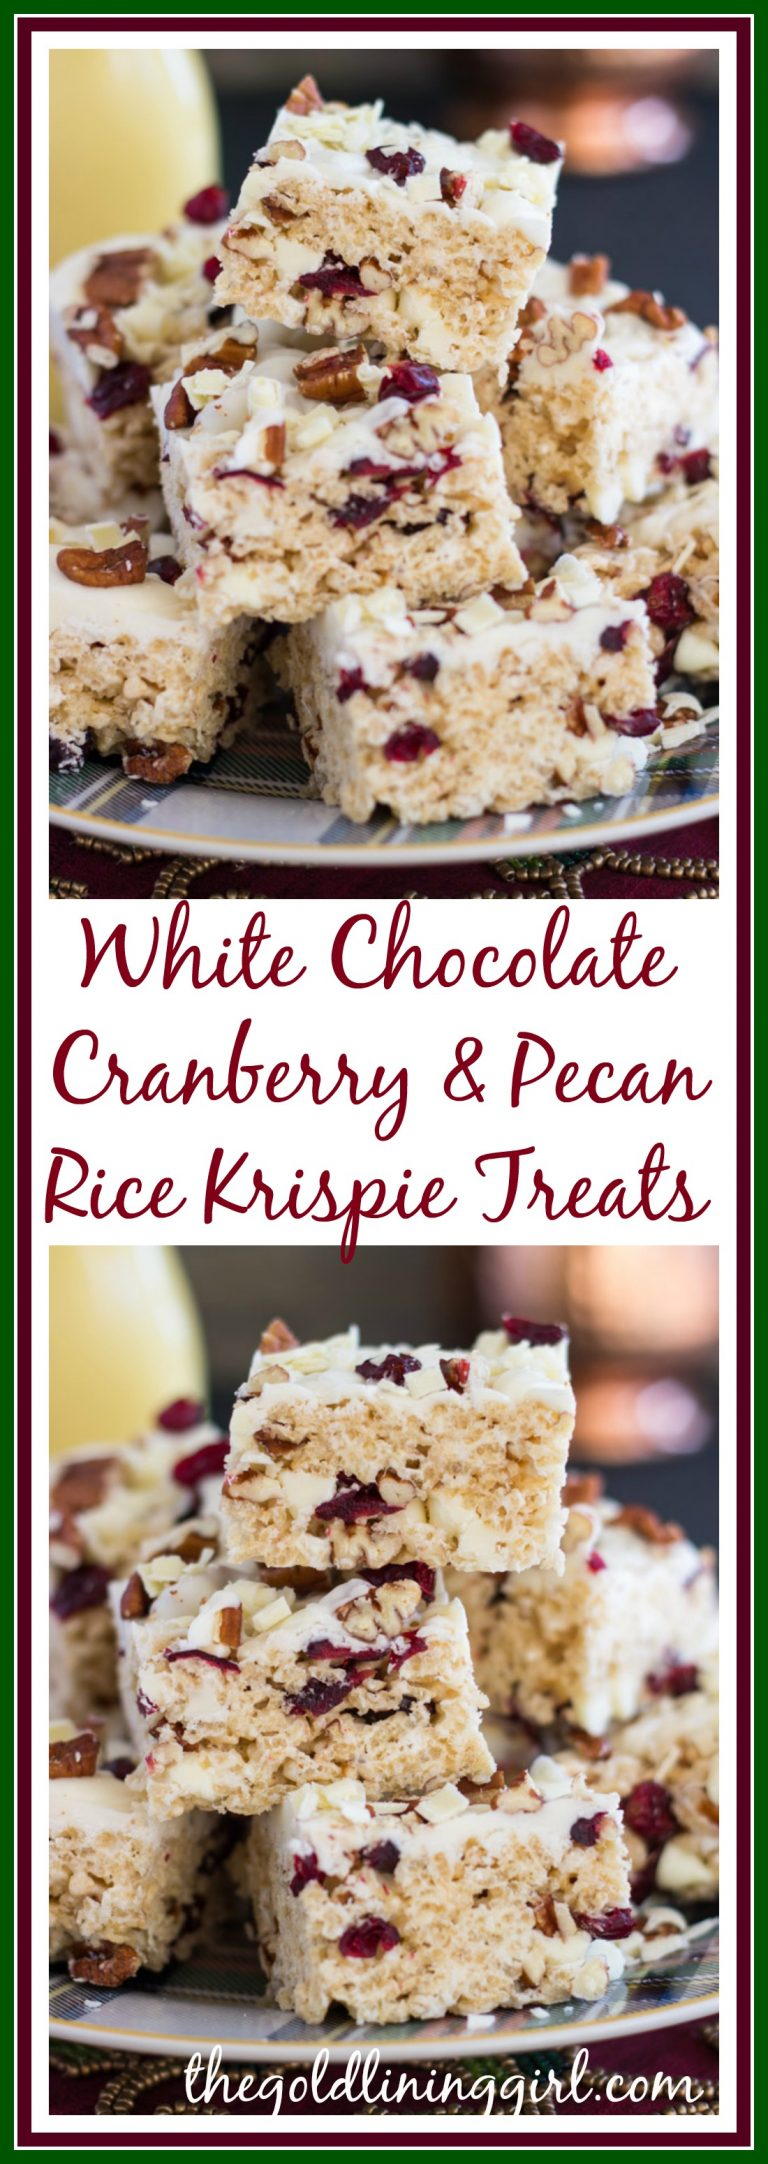 White Chocolate Cranberry Pecan Rice Krispie Treats